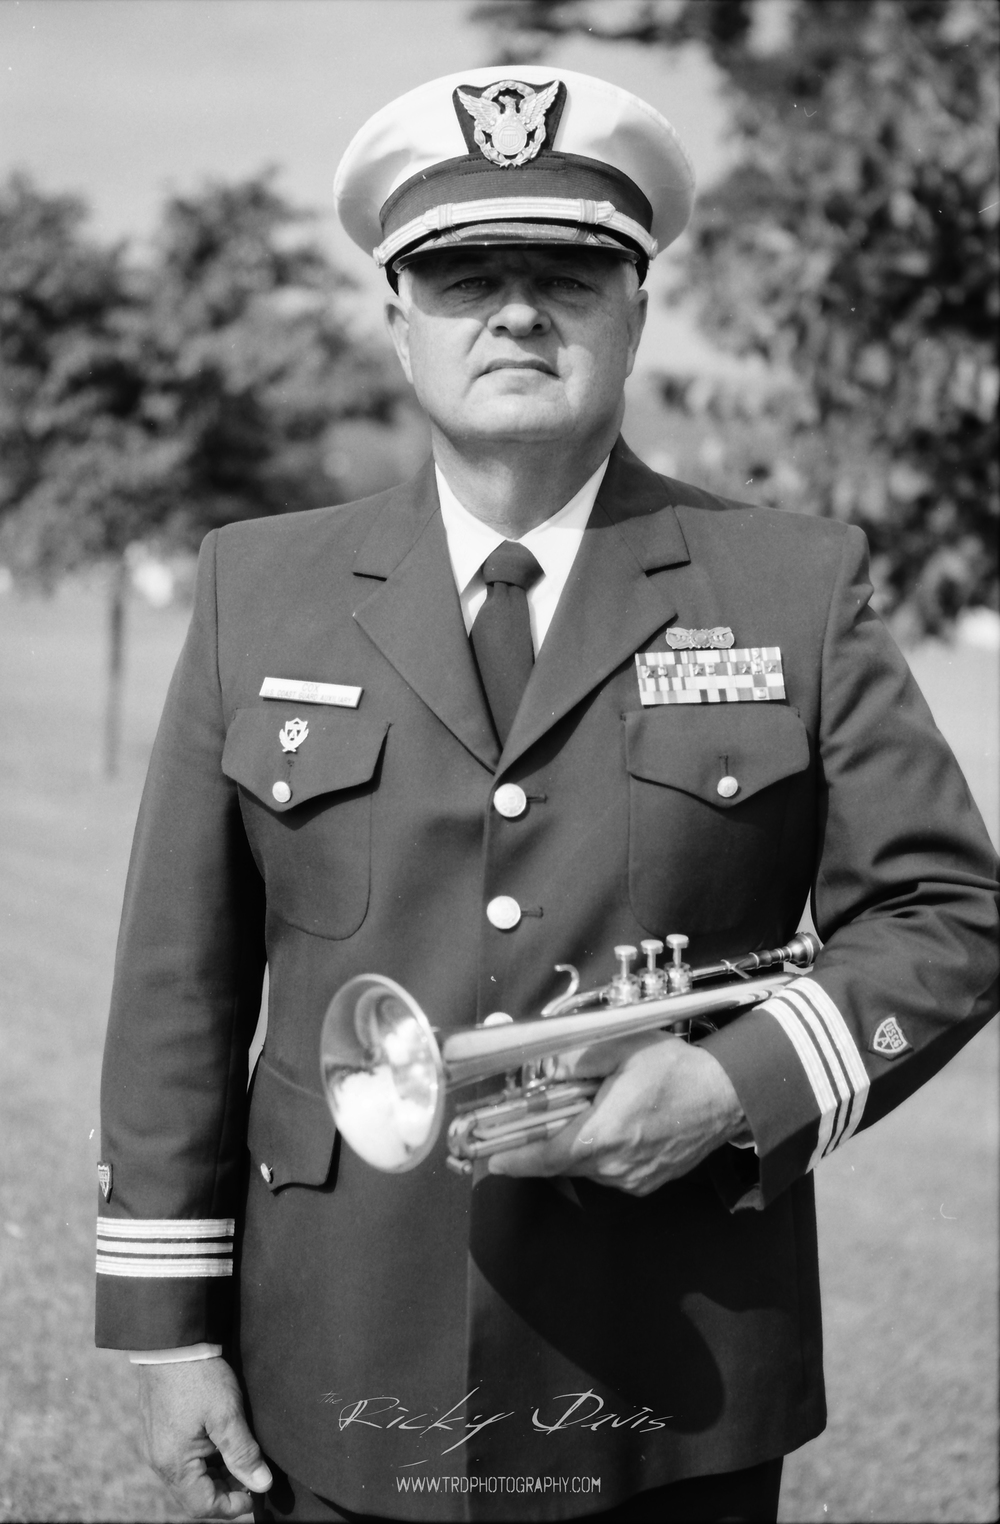 Bugle Player - David A Cox. Photo by Photographer Ricky Davis of TRD Photography. Film - Tmax 100.